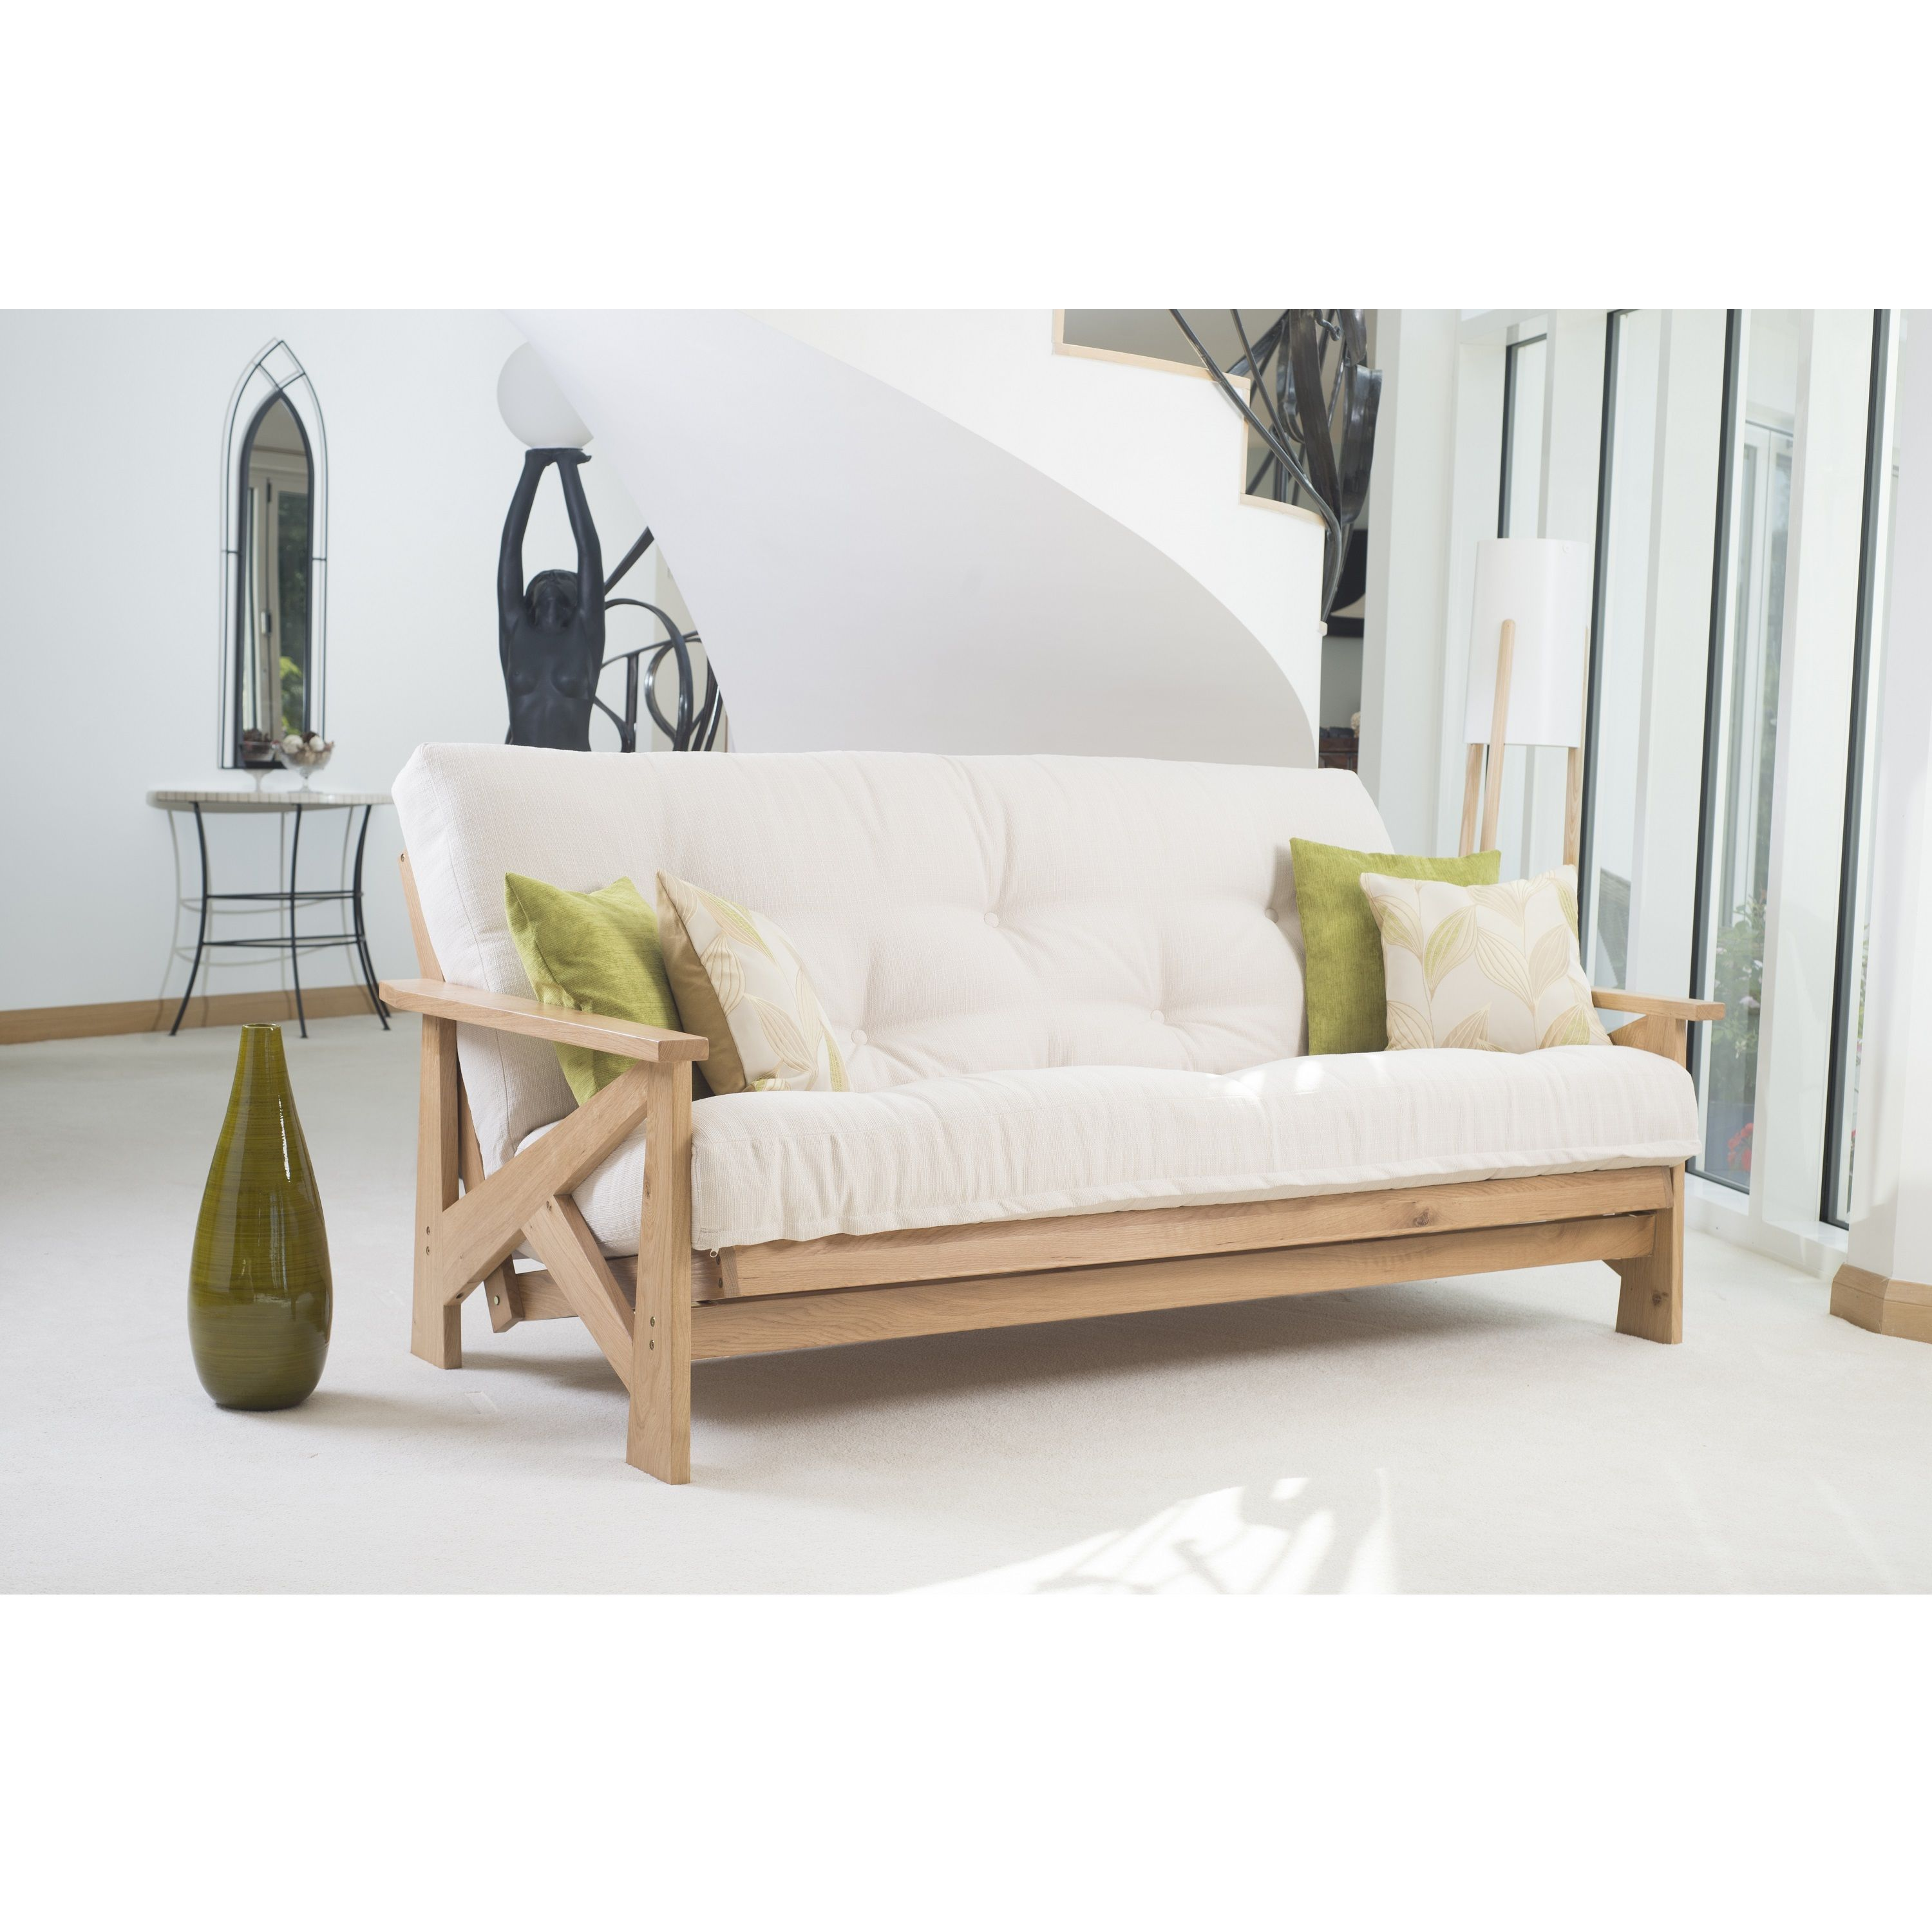 Copenhagen 3 Seater Oak Futon Sofa Bed Looking For Something Diffe We Are Very Proud